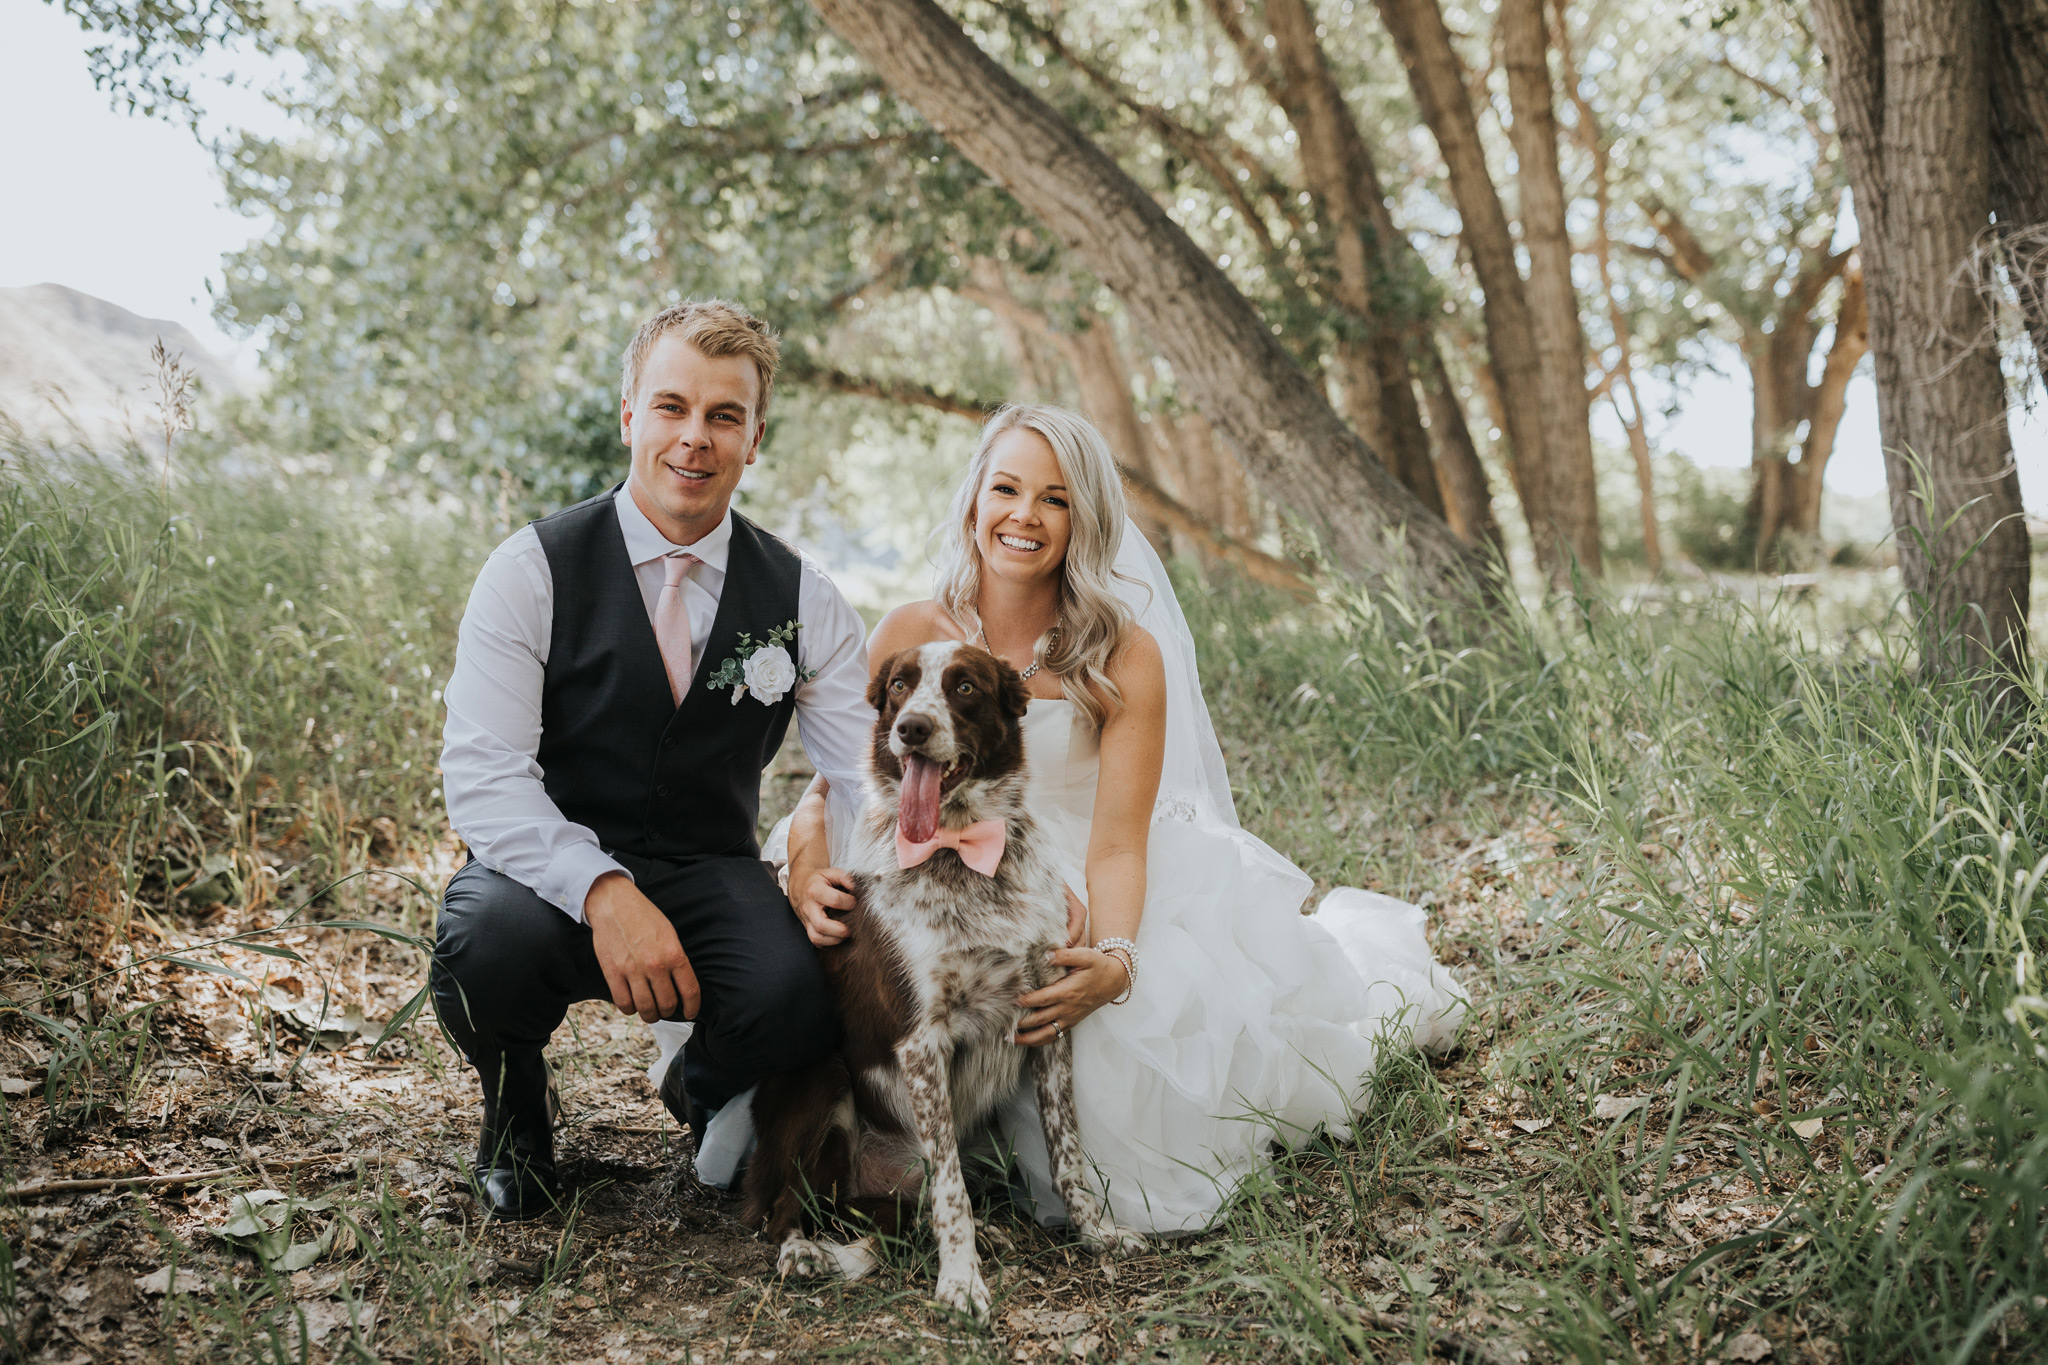 bride and groom pose with their dog wearing a bowtie